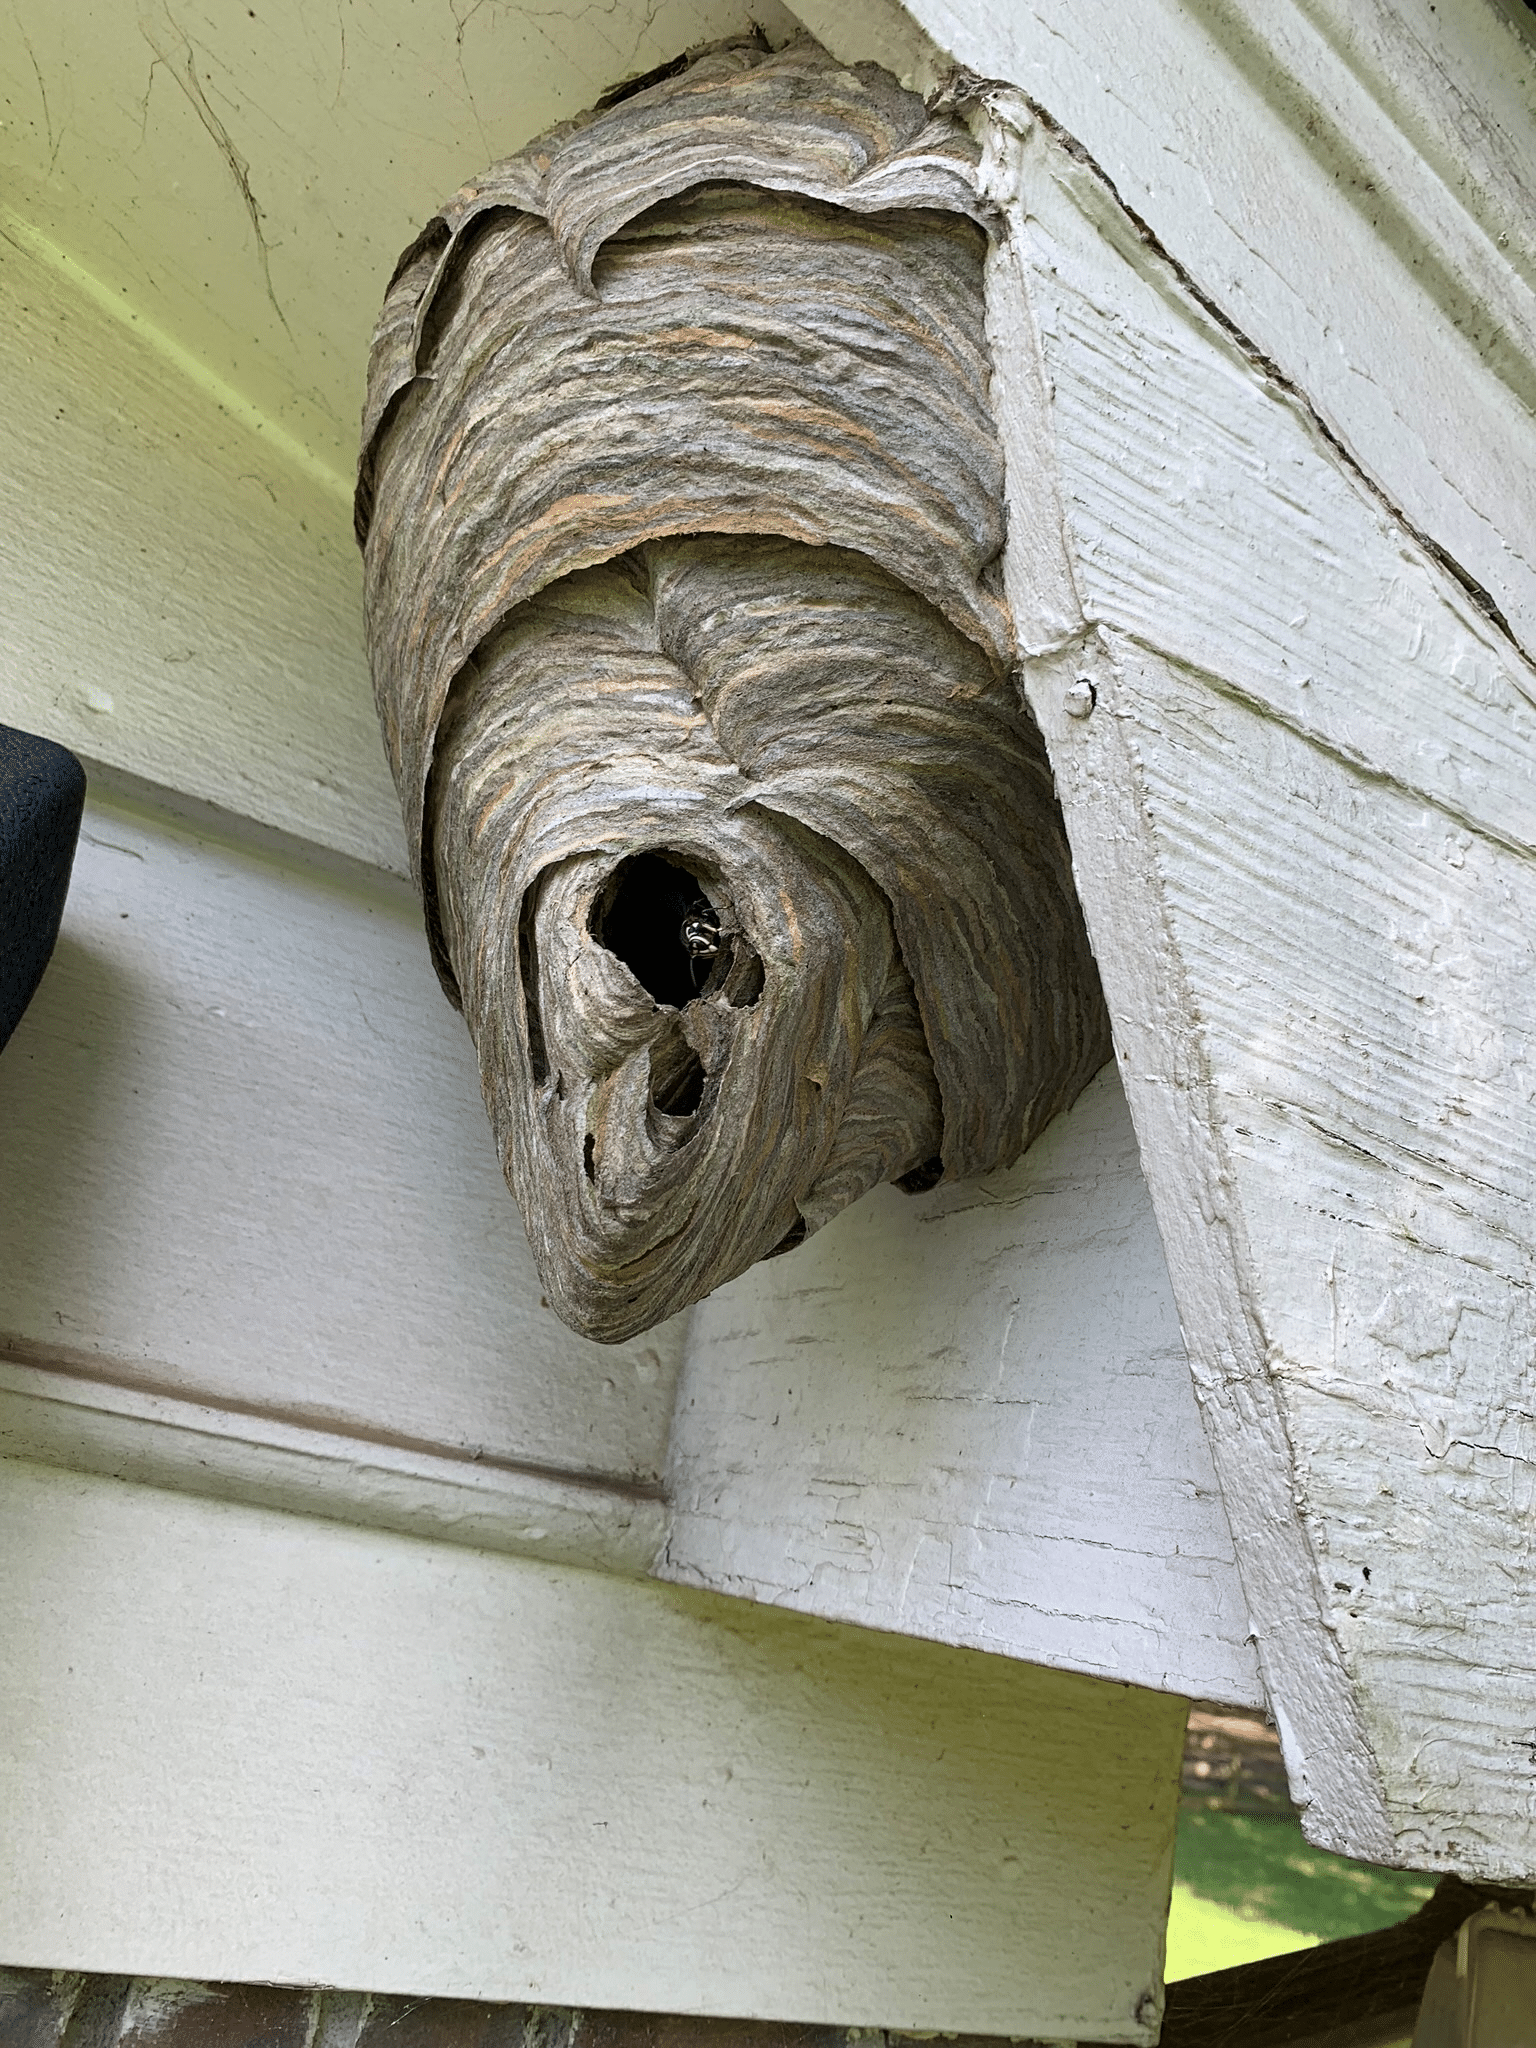 Hive removal - Bald Faced Hornet - Yellowjackets, etc